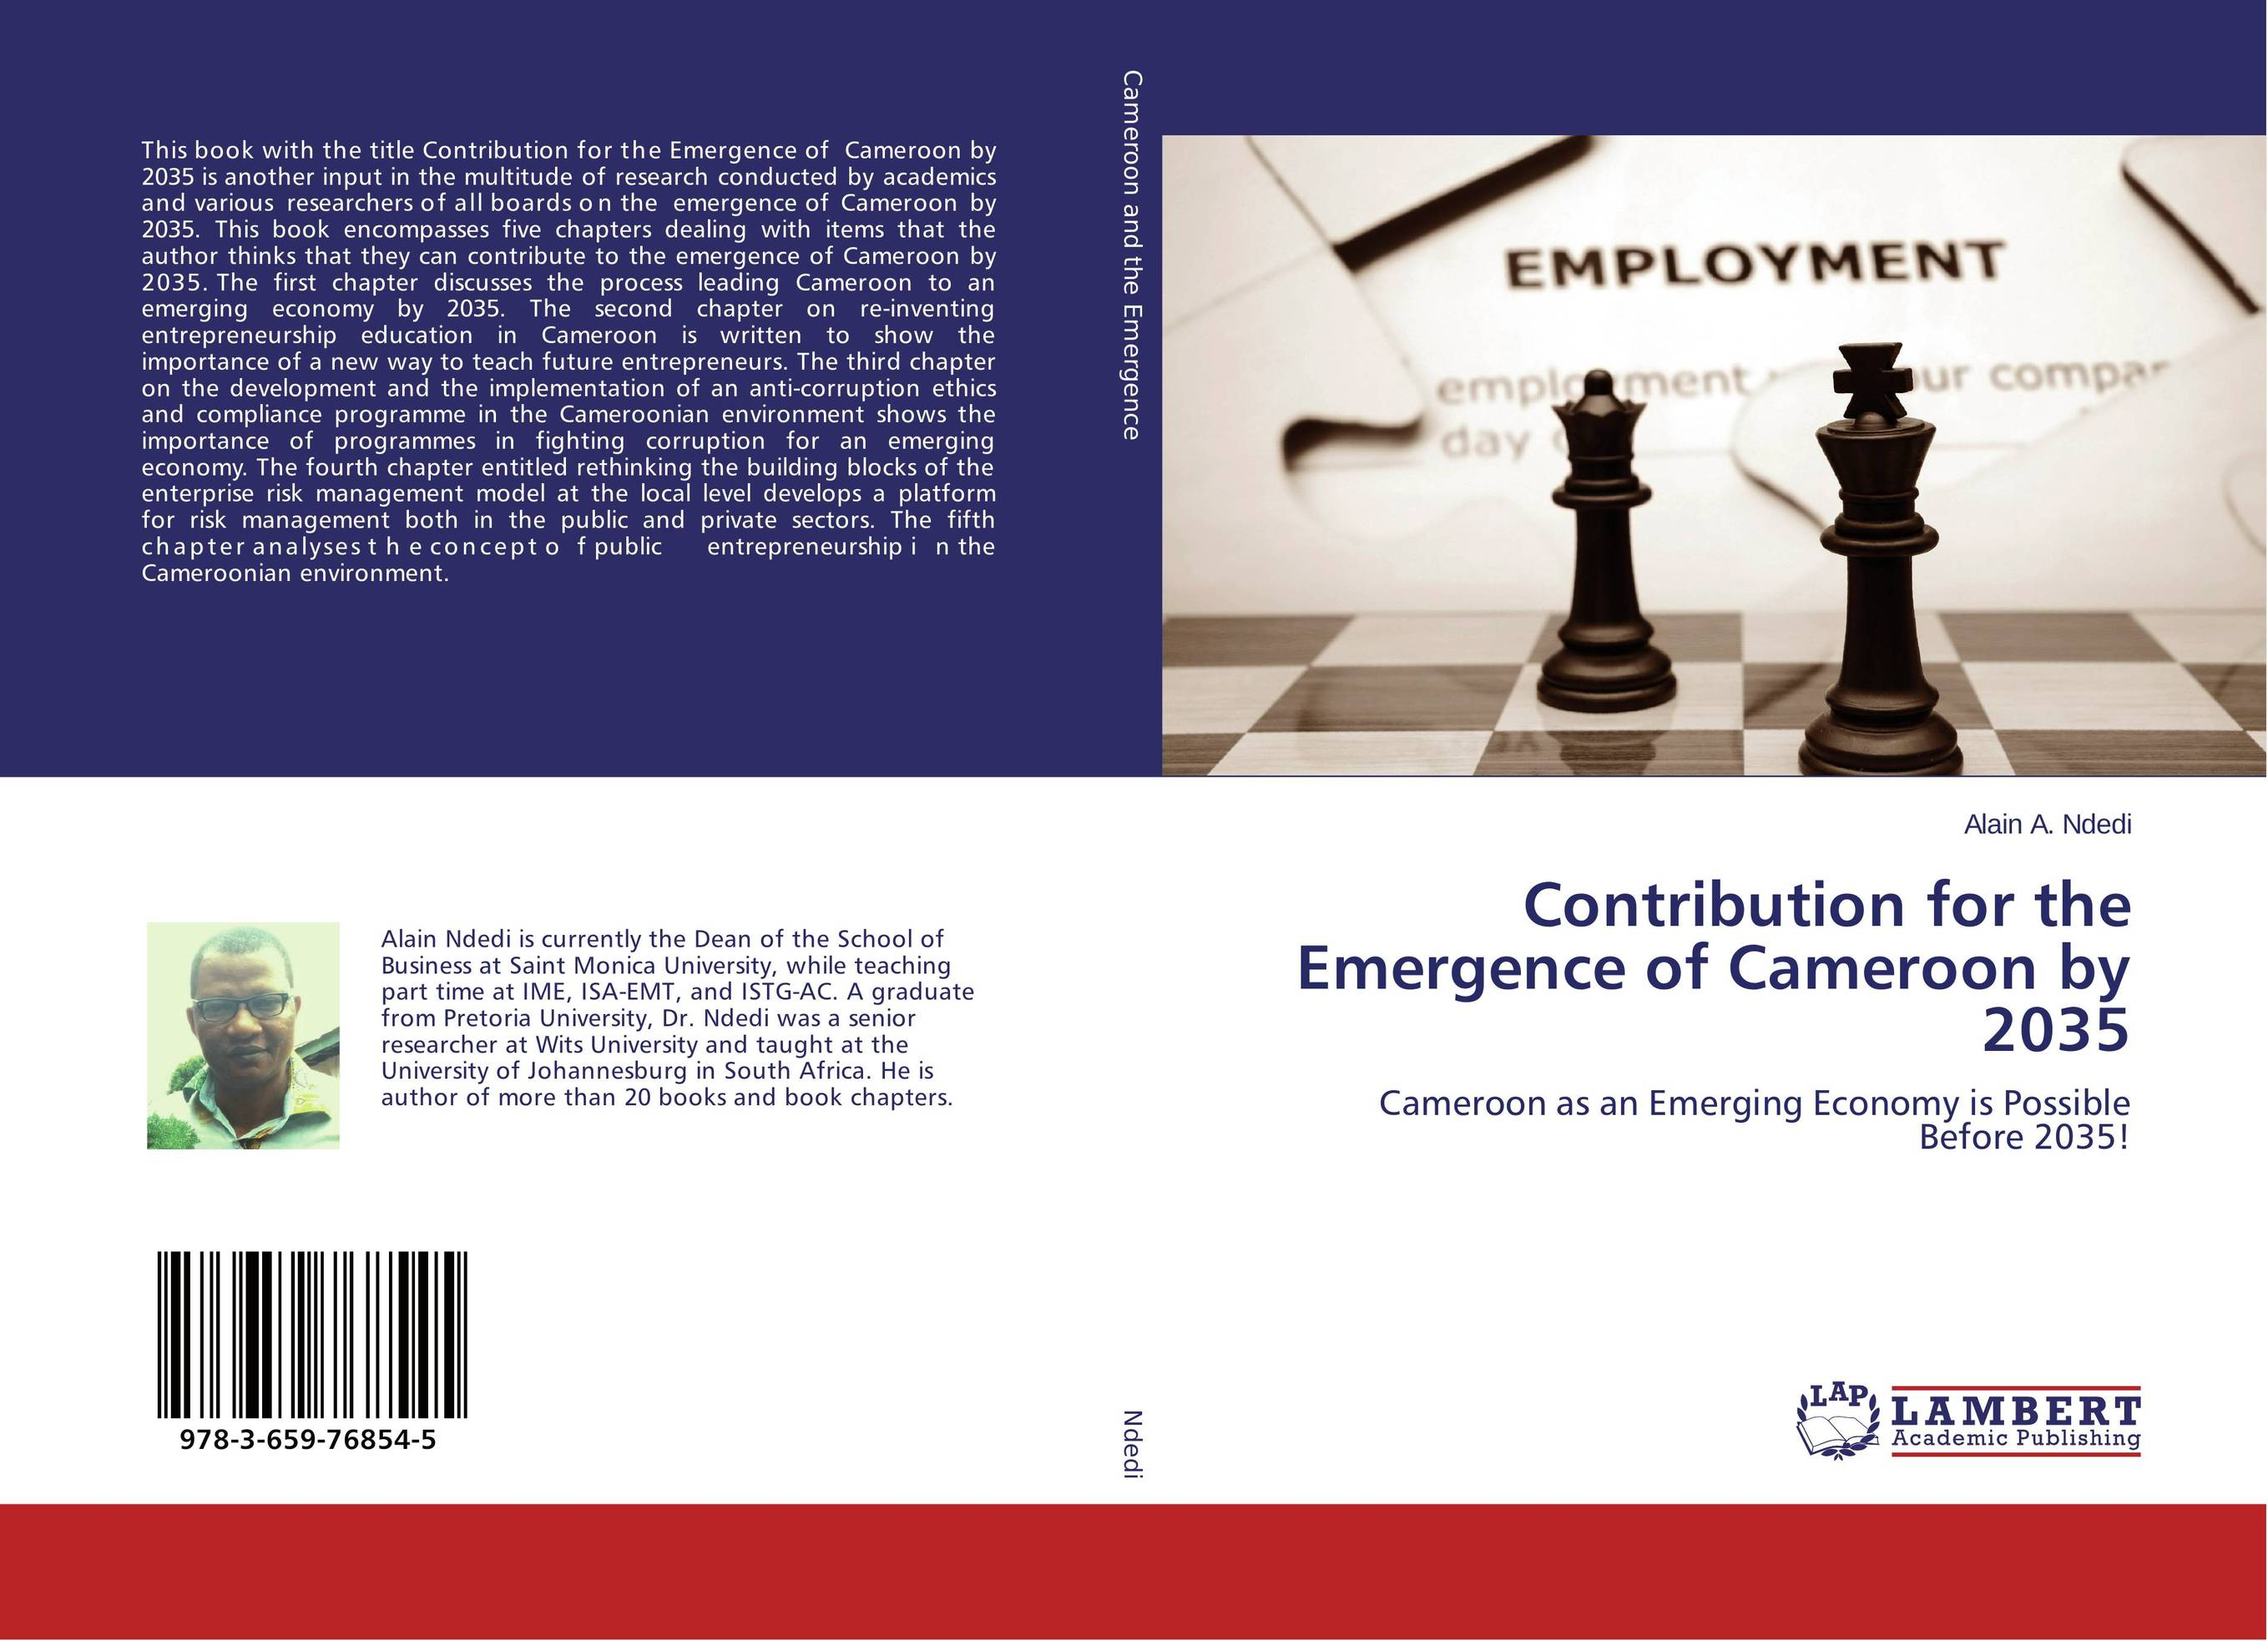 Contribution for the Emergence of Cameroon by 2035